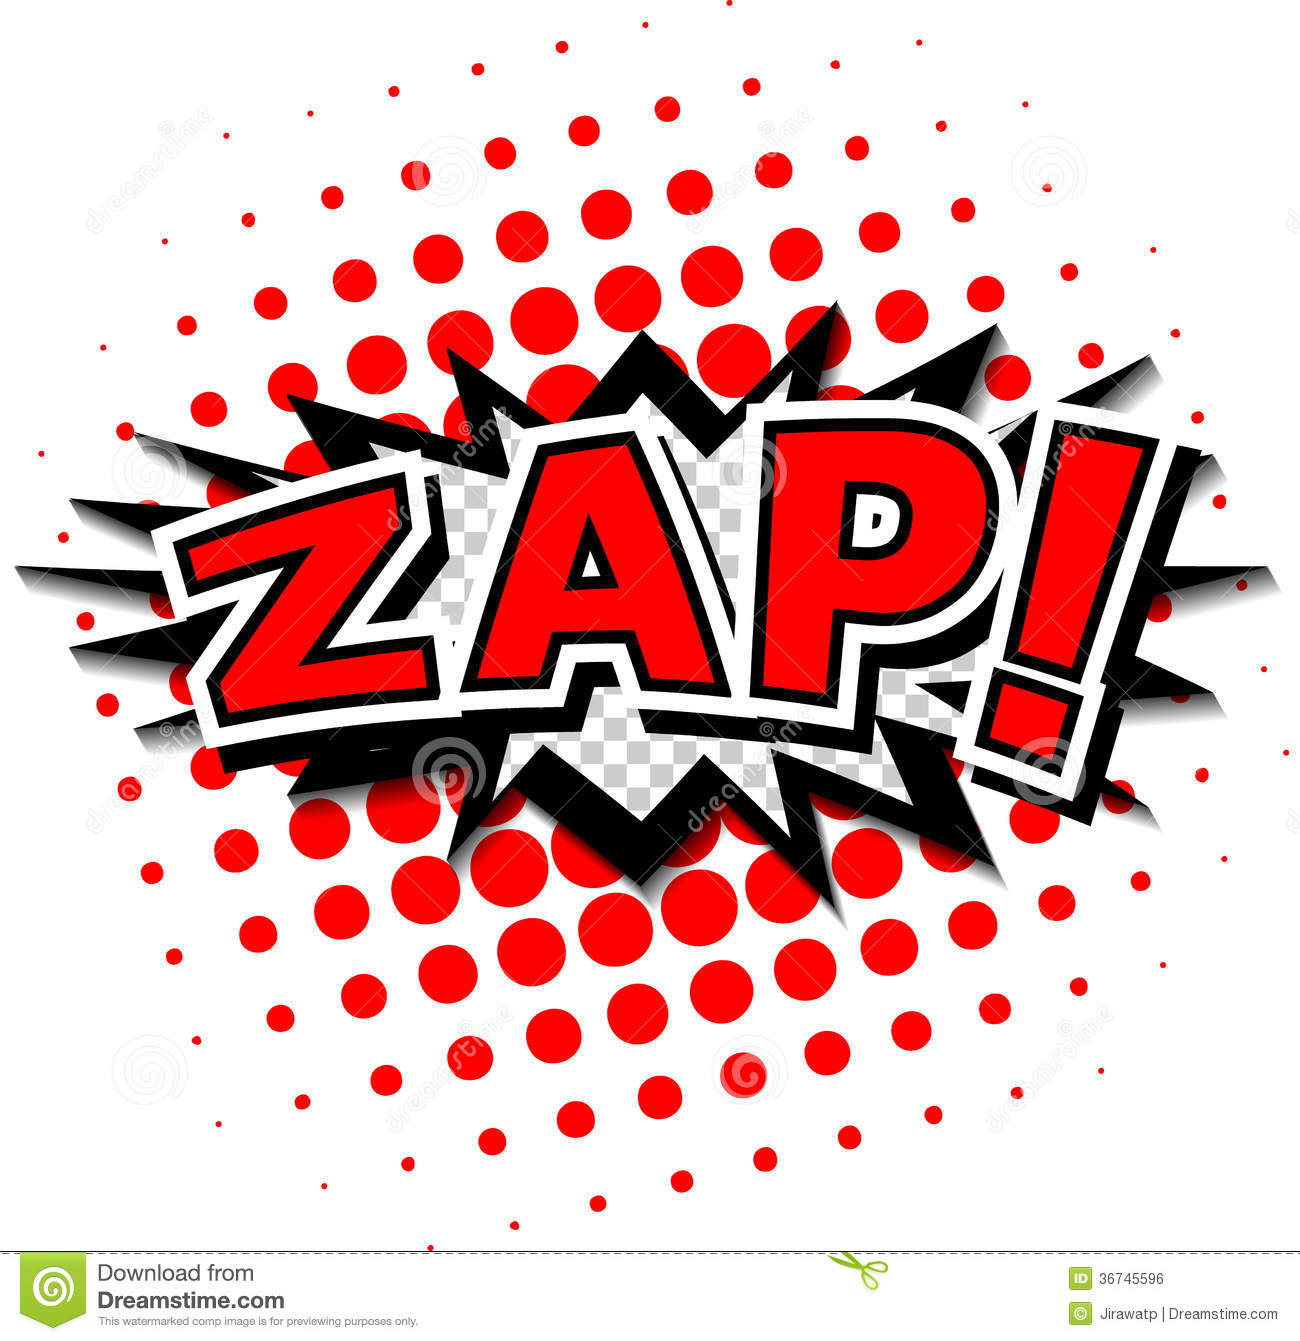 zap online dating This dating site is just for you, if you are dreaming to have a relationship or get married registration is for free, sign up and start dating and chatting to single people.